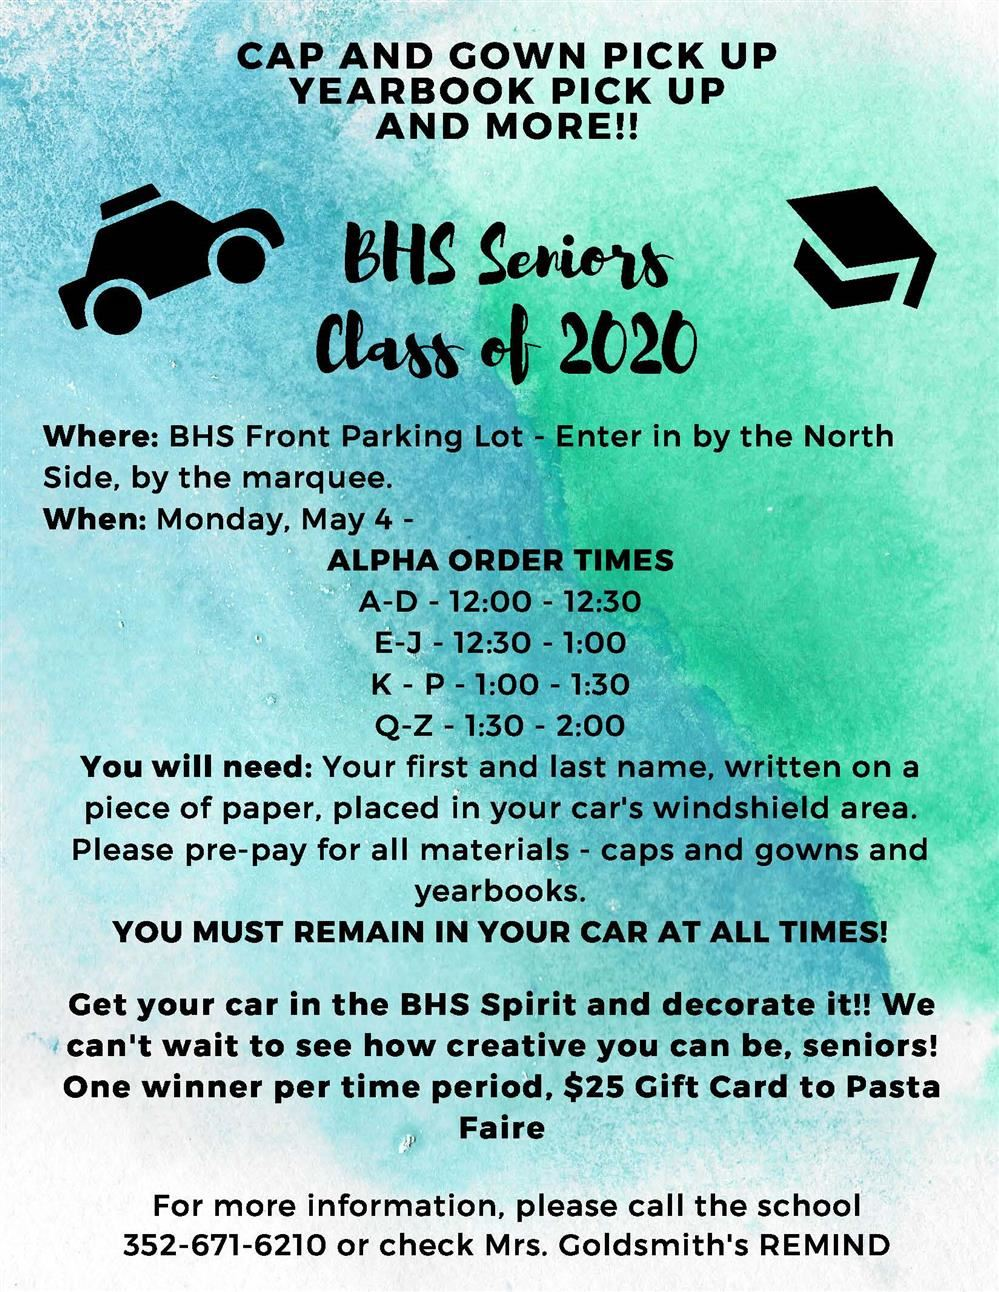 BHS Class of 2020 Information